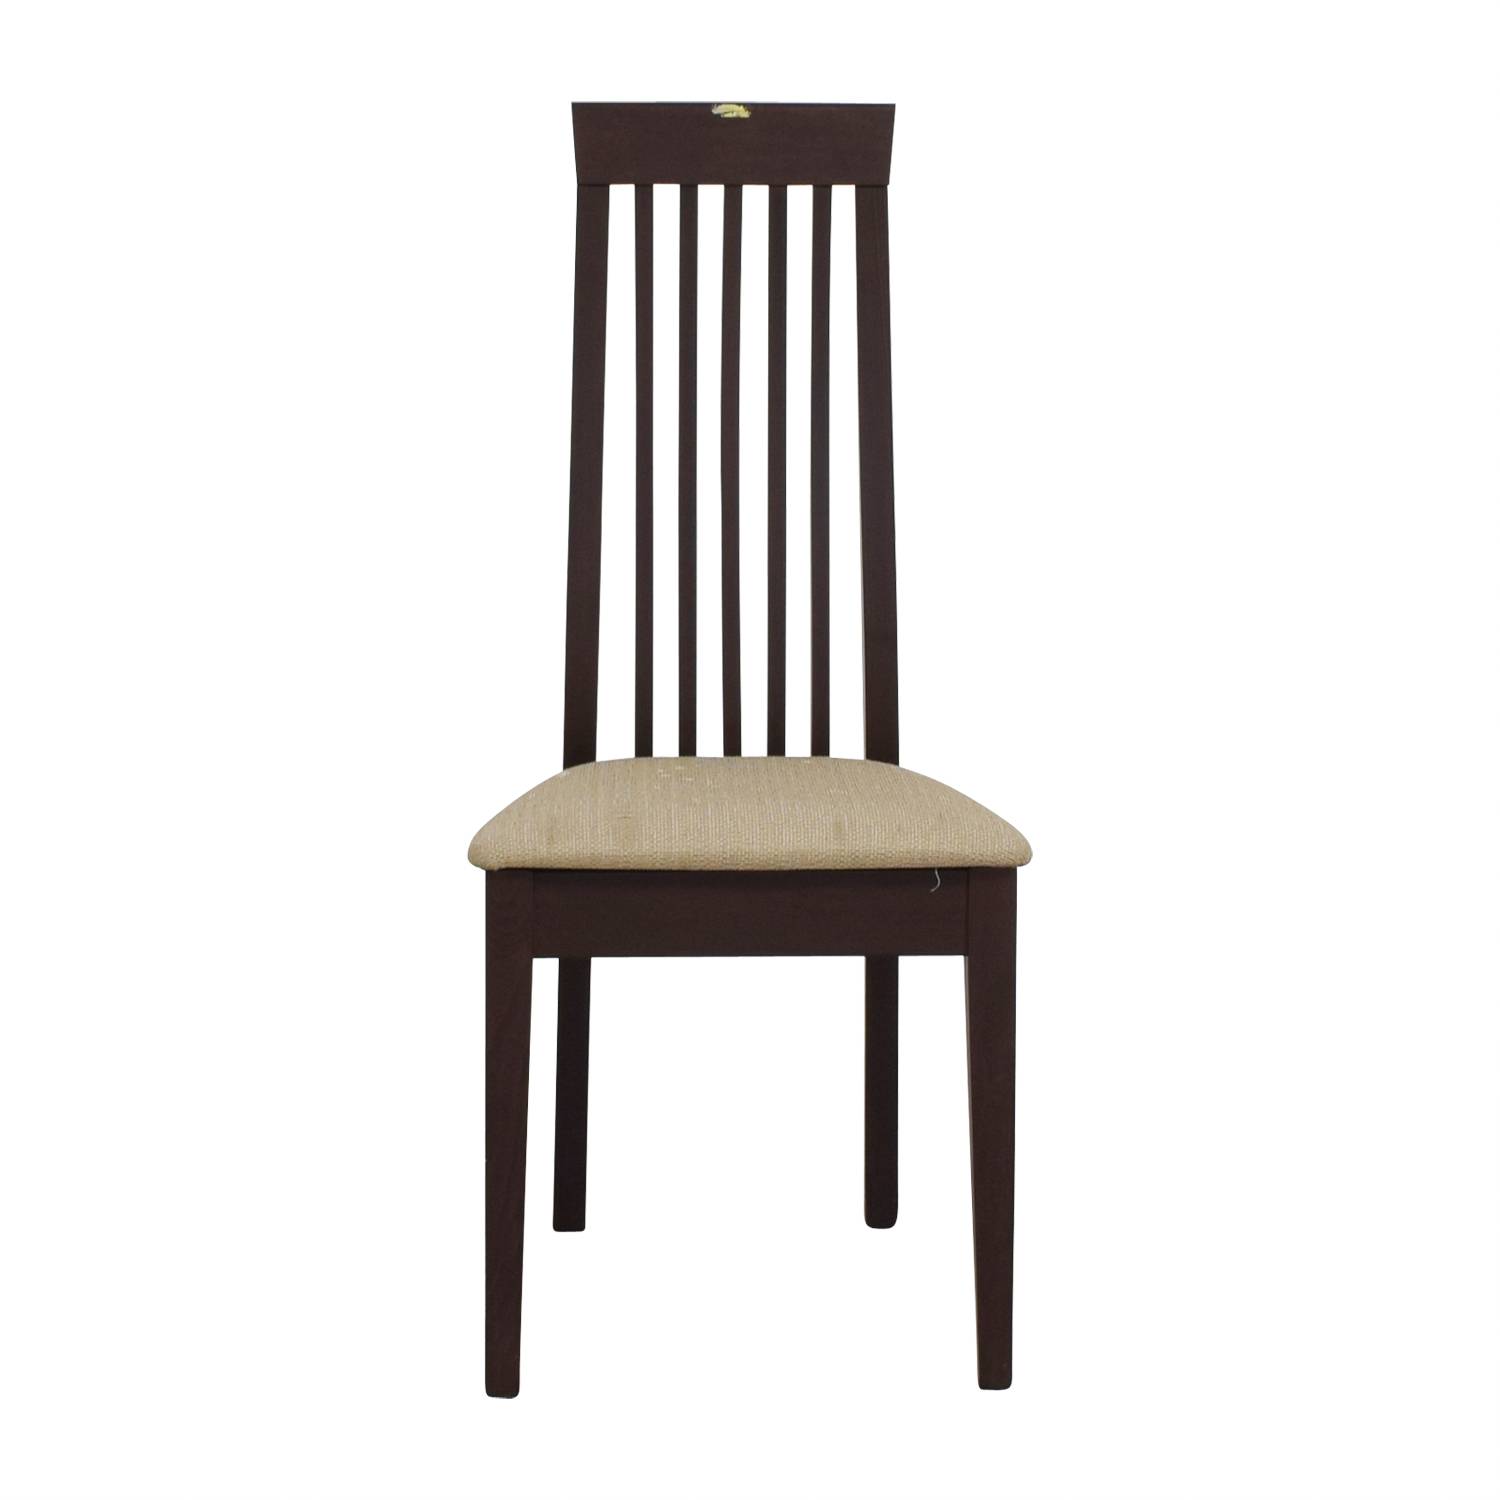 Wood Vertical Slat Back with Tan Cushioned Chair